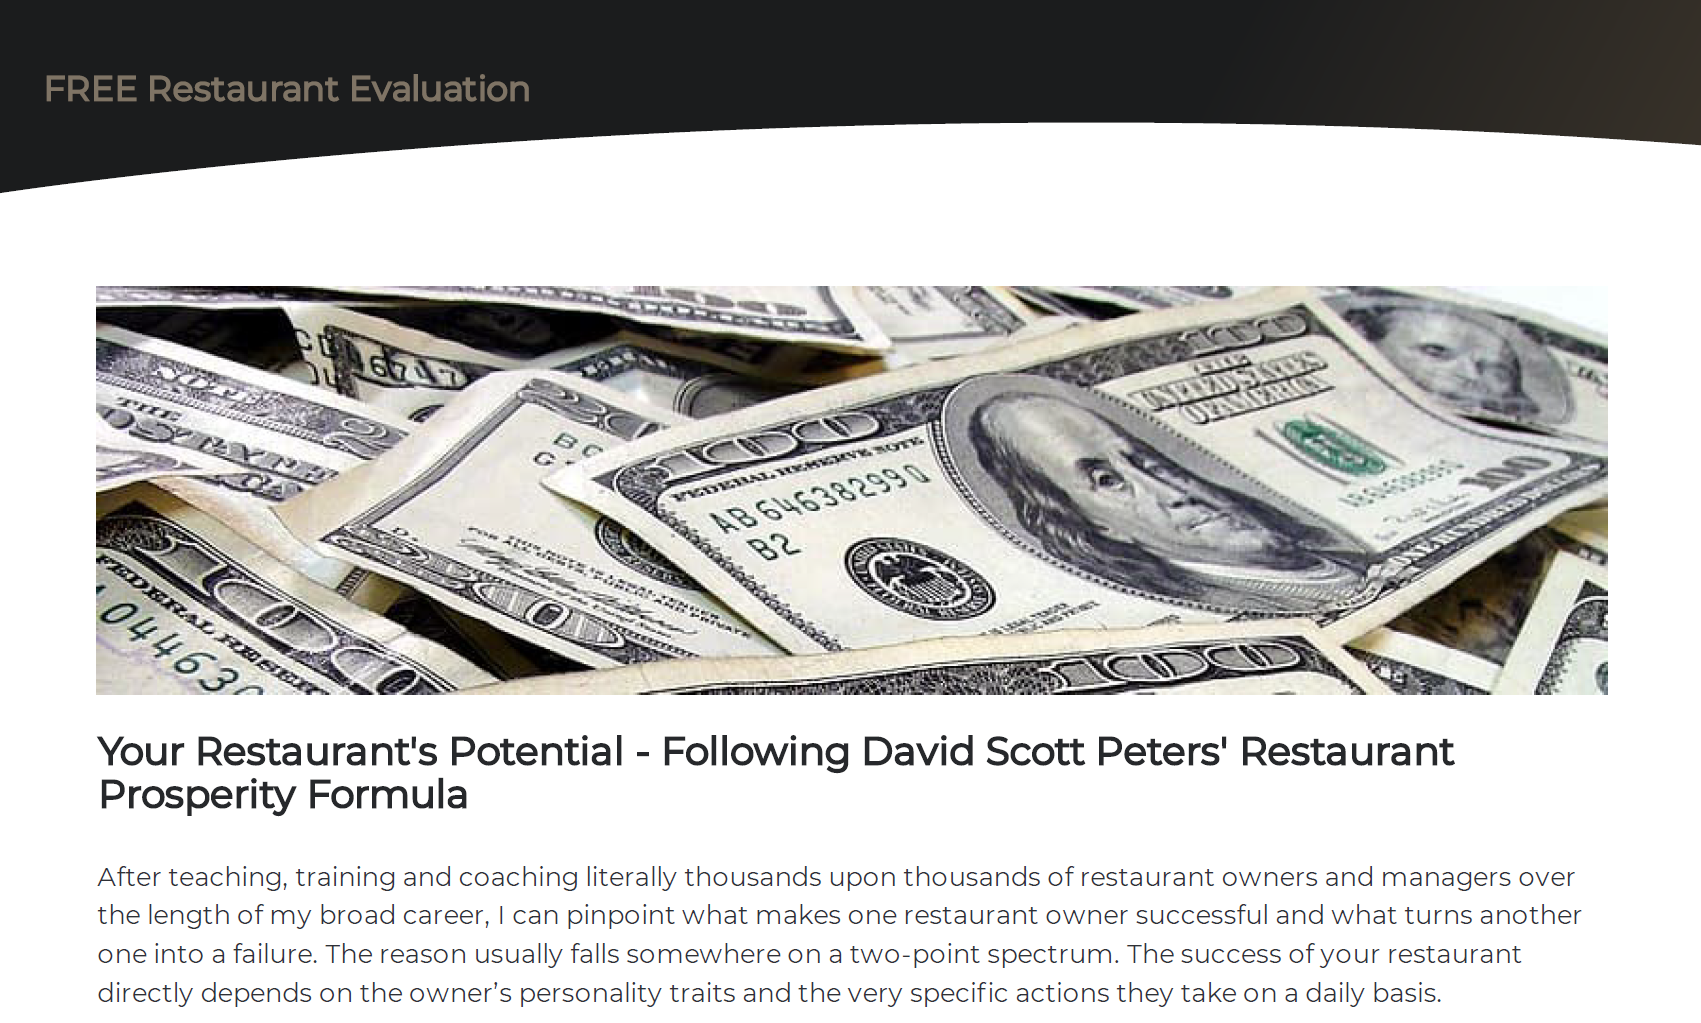 Free Restaurant Evaluation David Scott Peters Restaurant Prosperity Formula